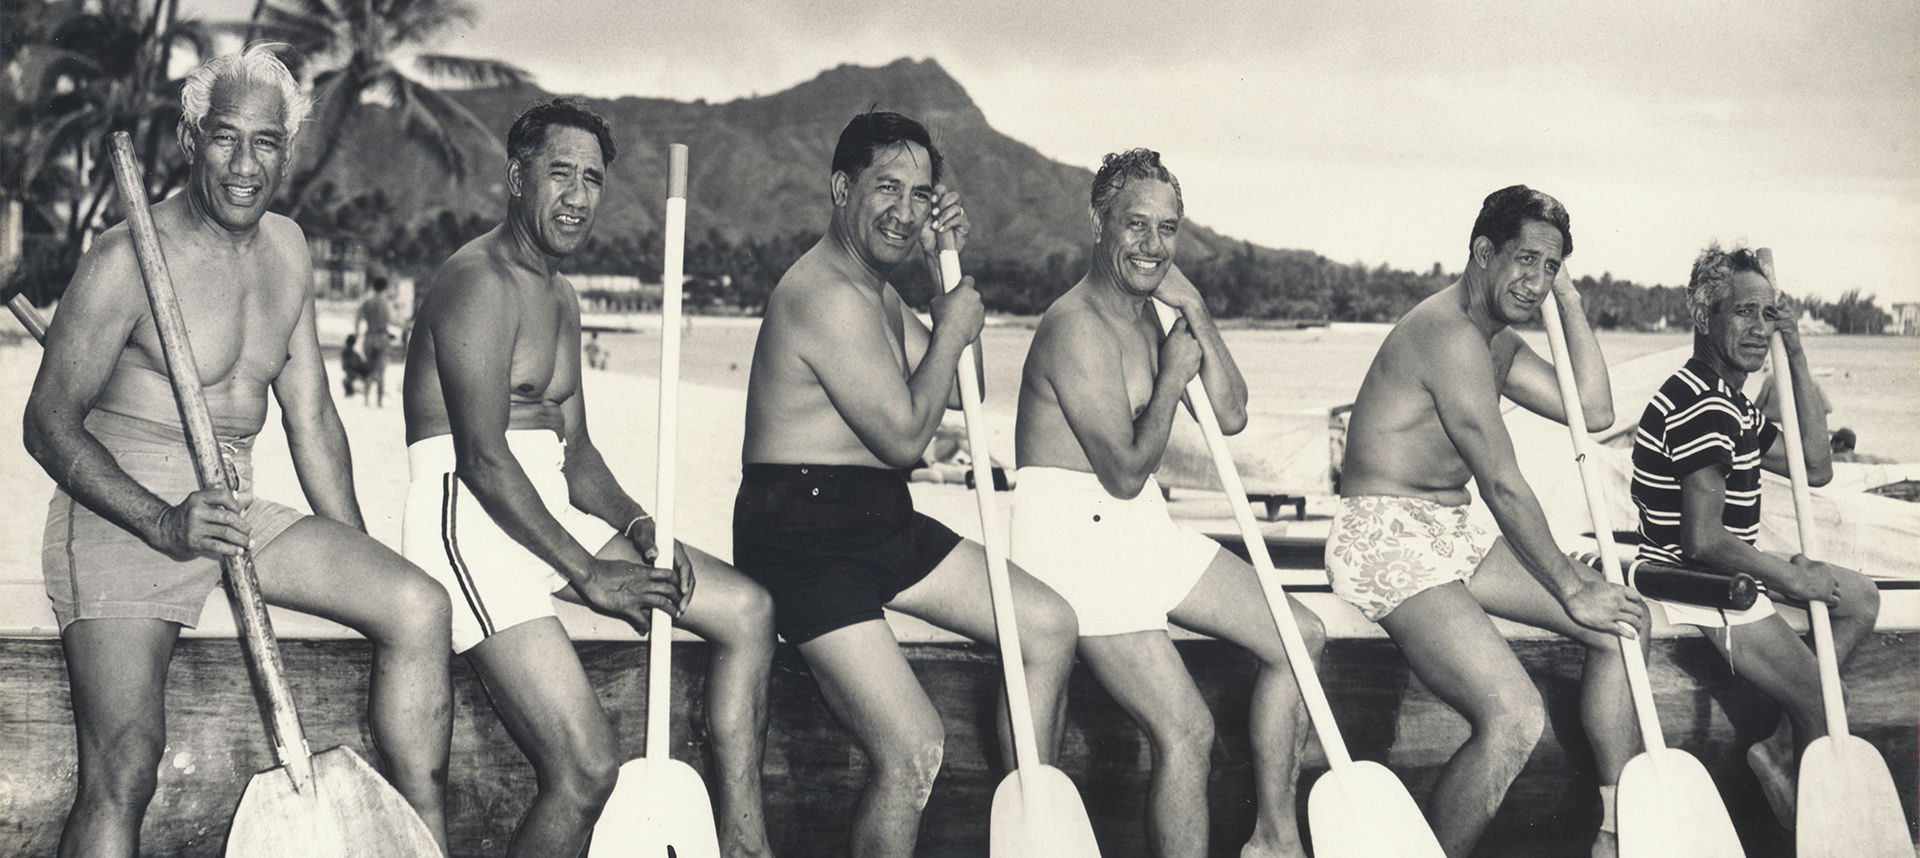 Duke and men sitting on dock with oars